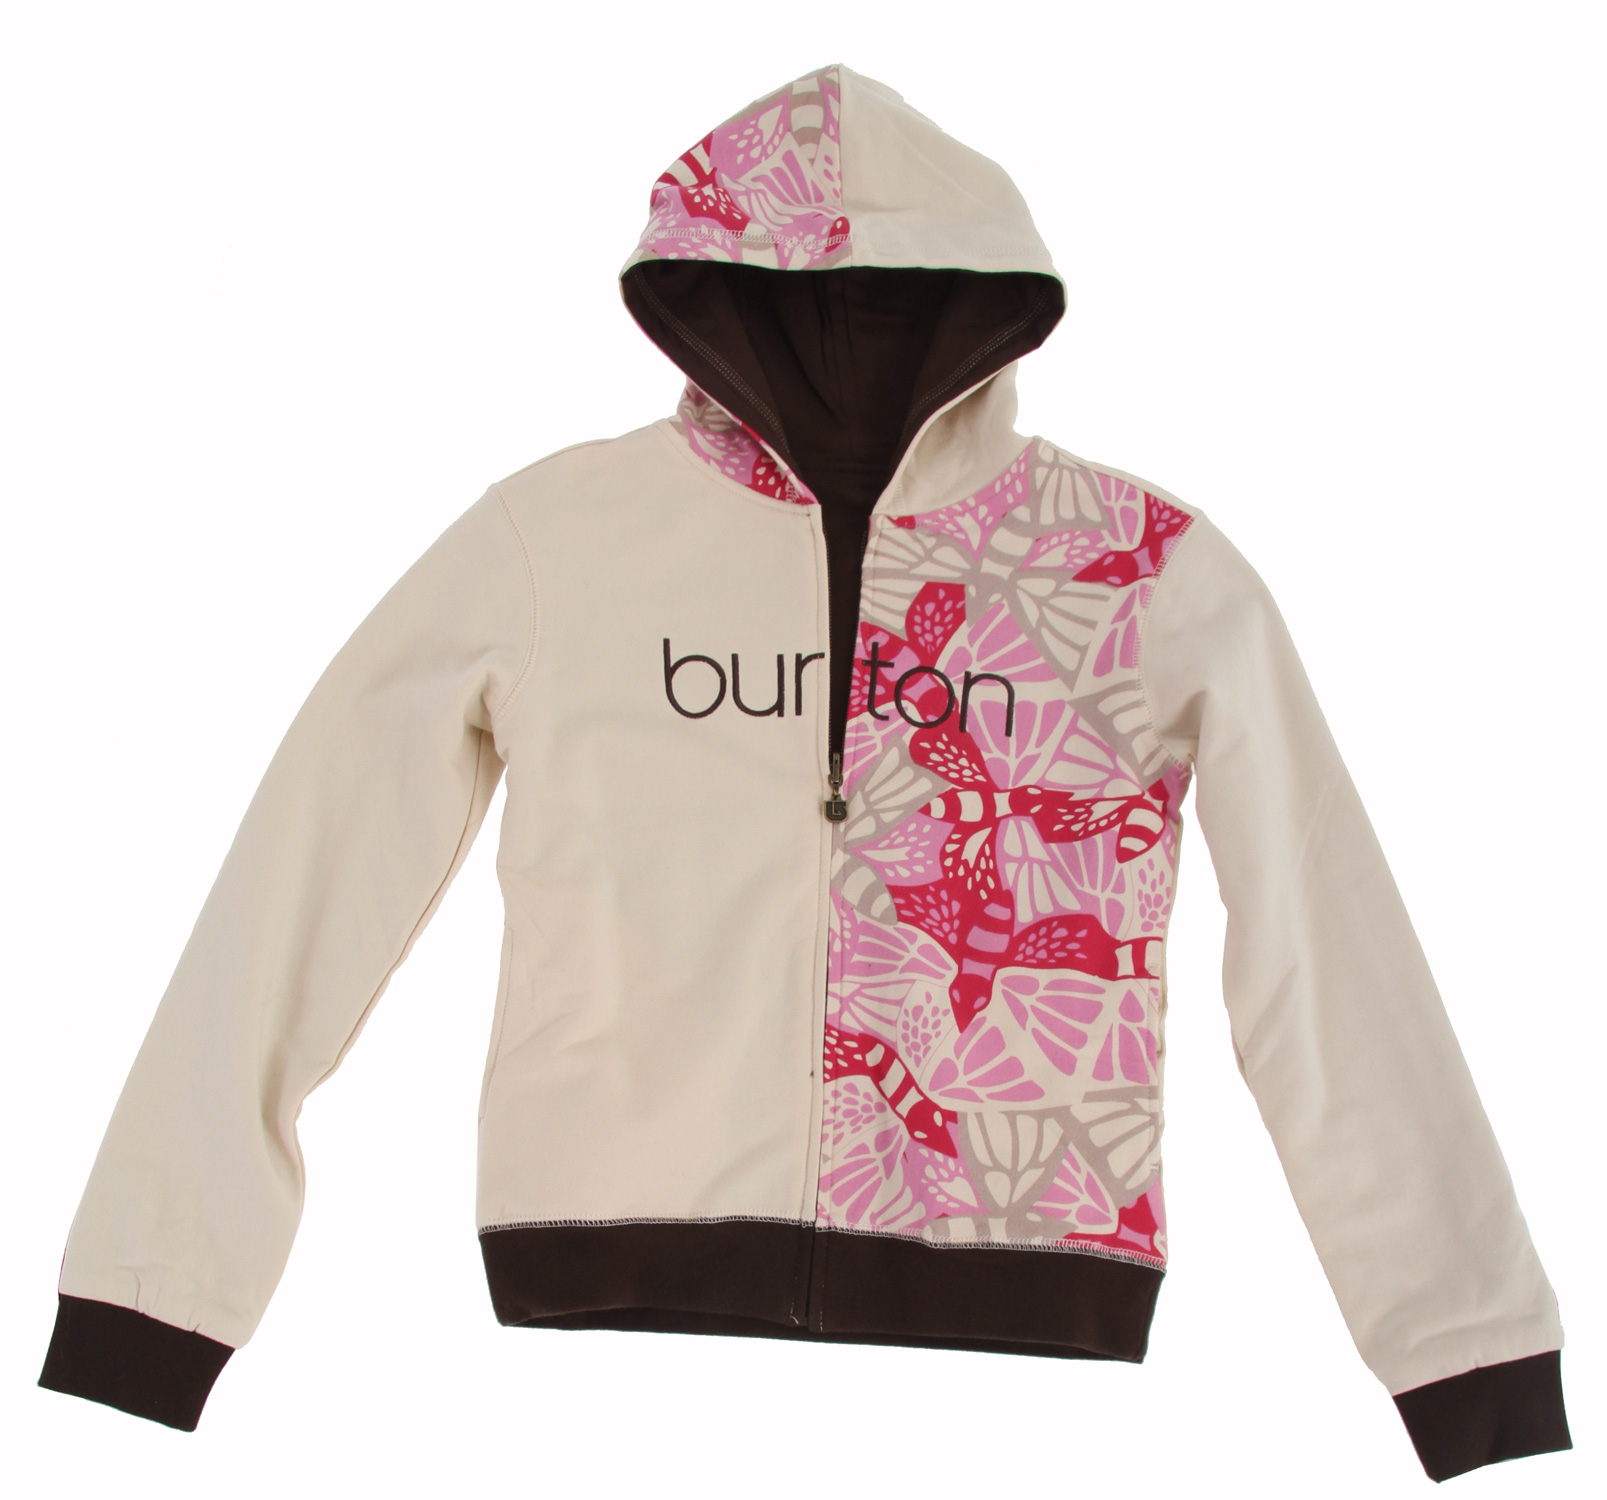 Snowboard Key Features of the Burton Butterlove Girl's Hoodie: 95% Cotton, 5% Spandex, 280G Reversible Full-Zip Hoodie with Water-Based Print Art Embroidery on One Side; Chest Applique on Reverse Side - $26.95